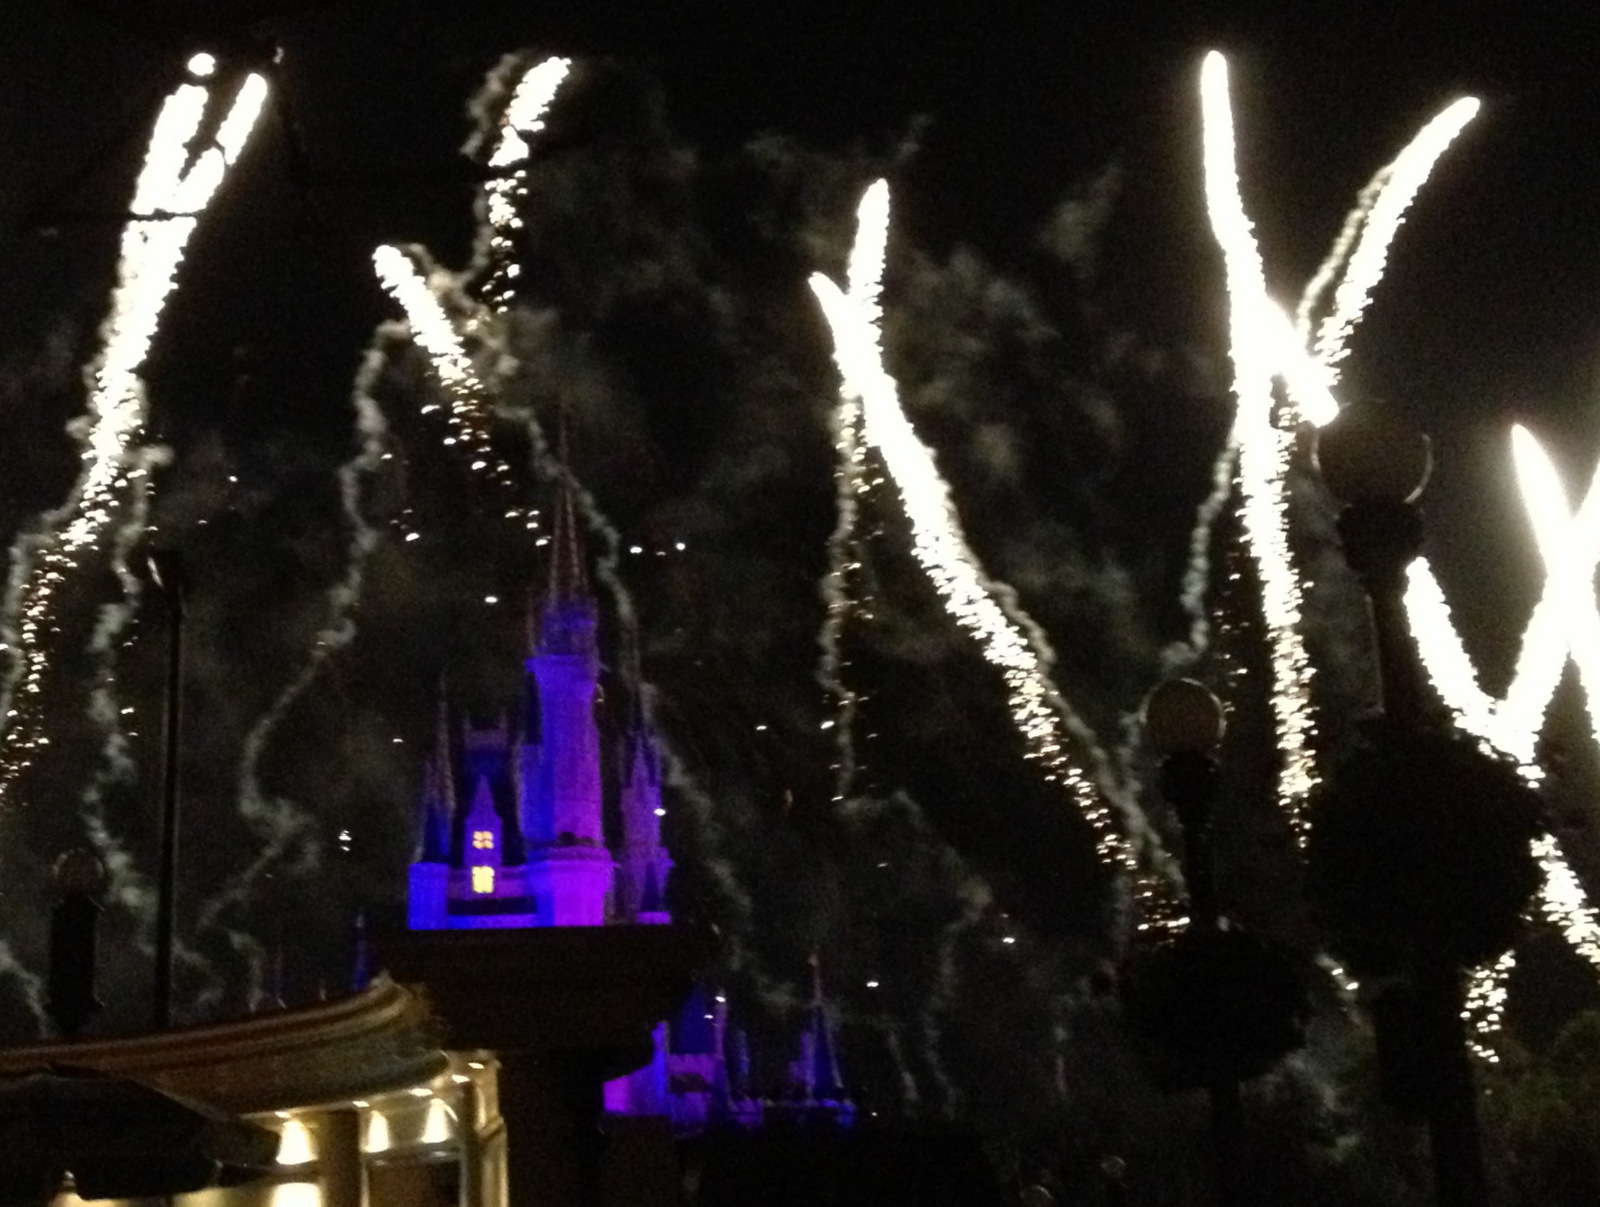 Fireworks and Cinderella's Castle